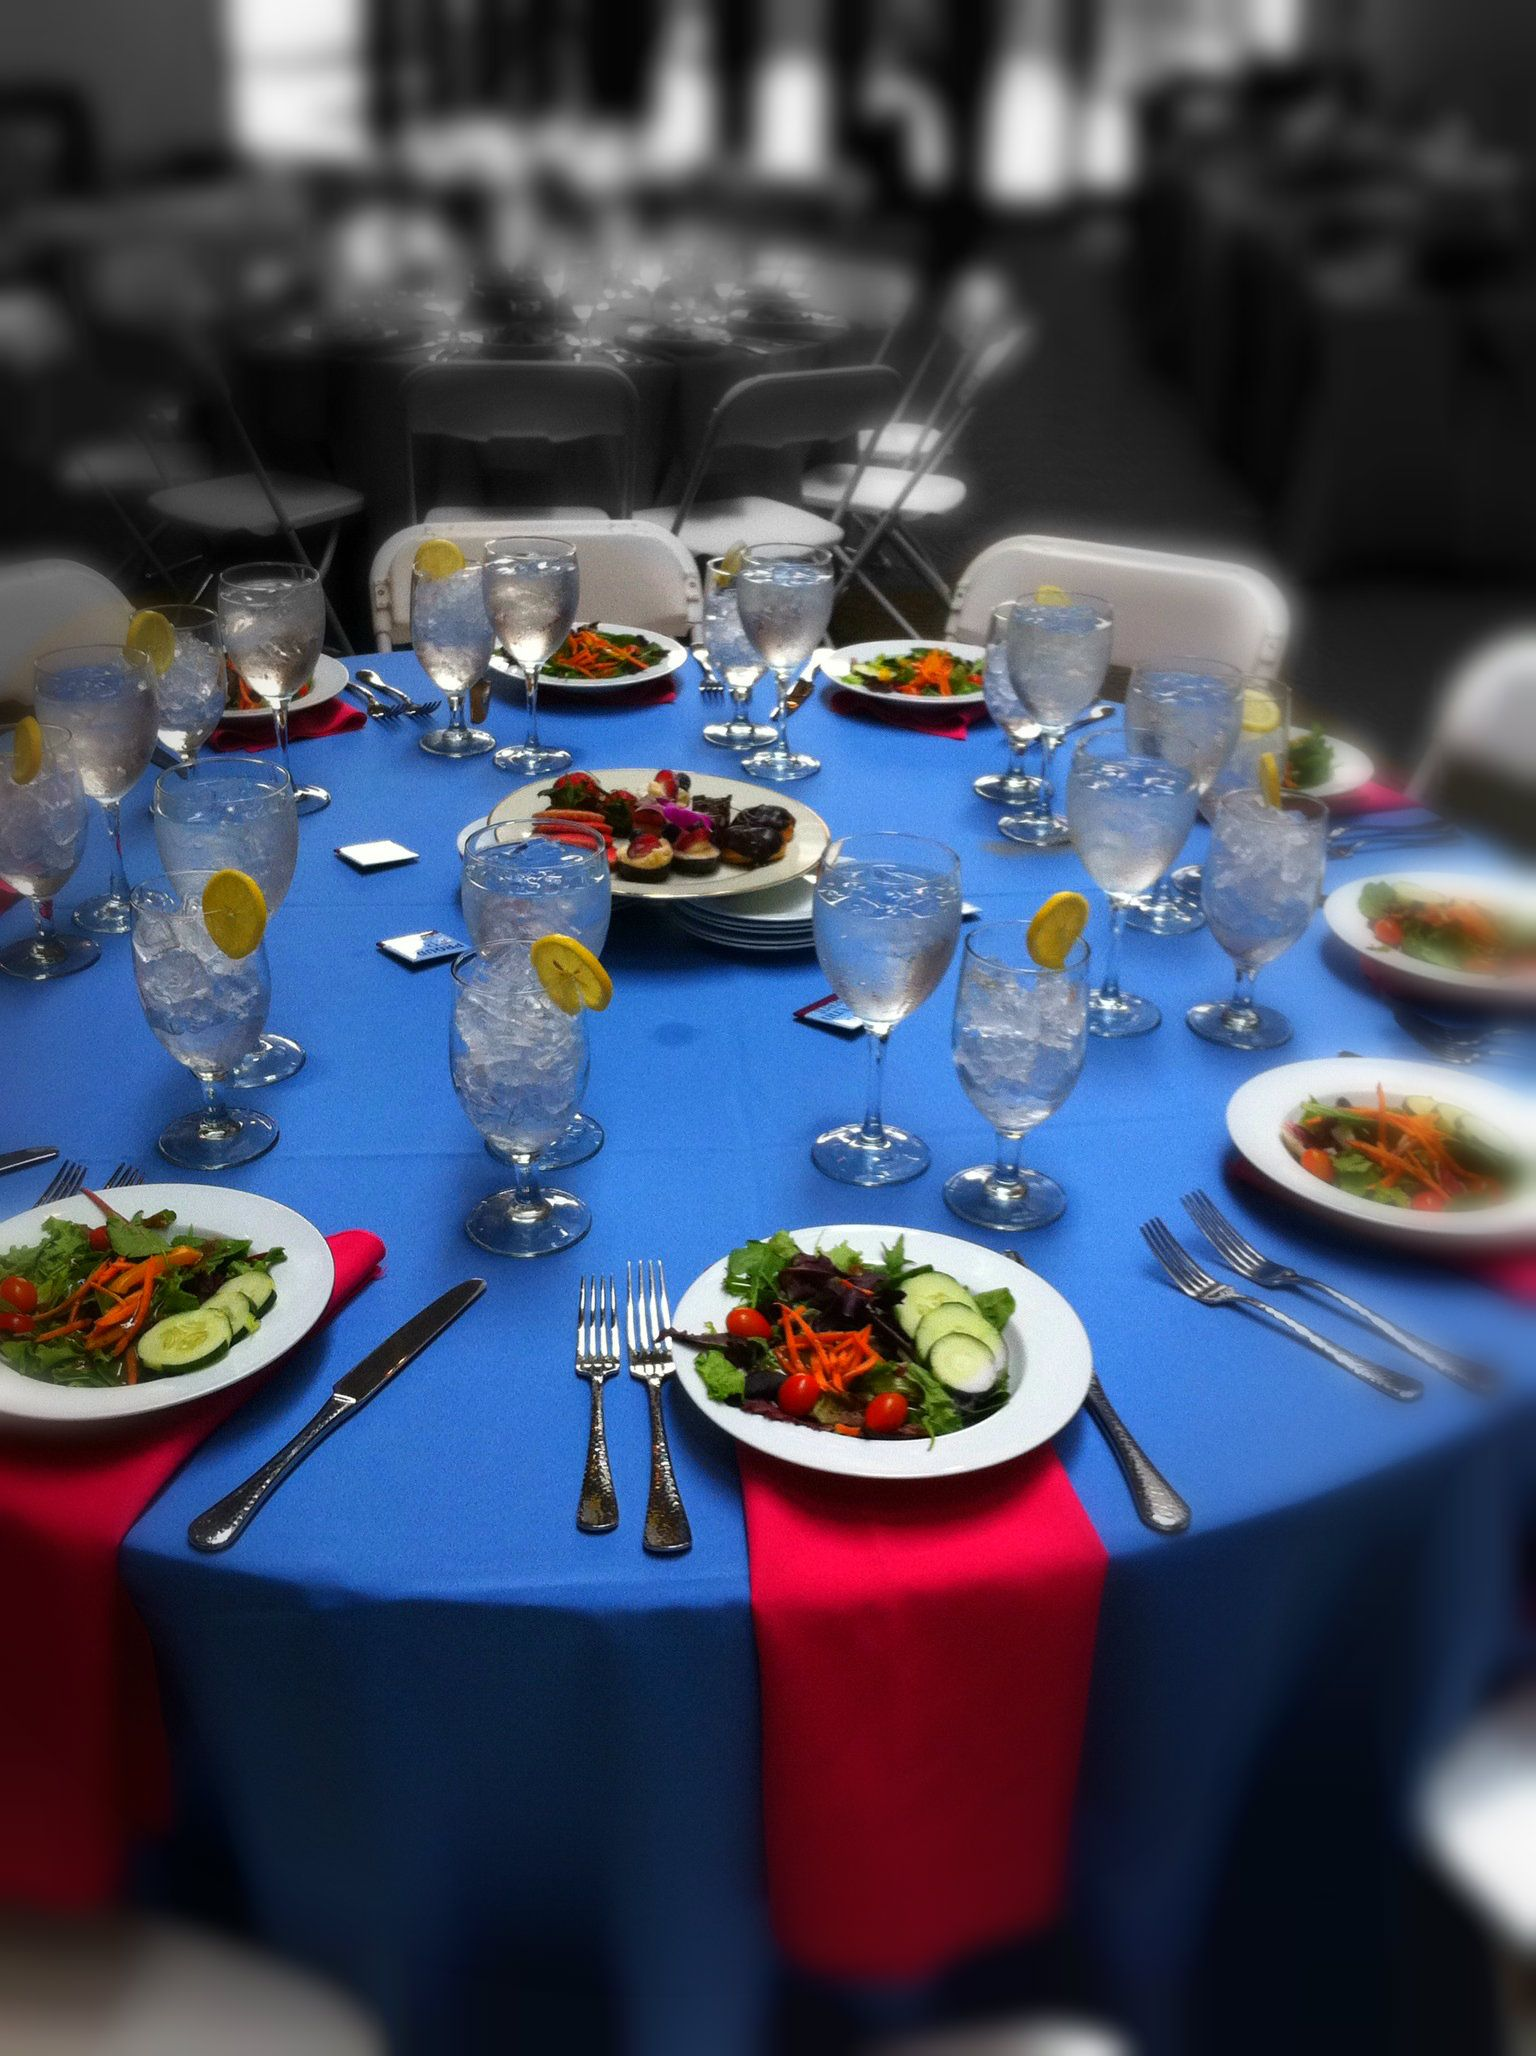 Chefs Table Catering Pink Blue Luncheon Great Table Design - The chef's table catering